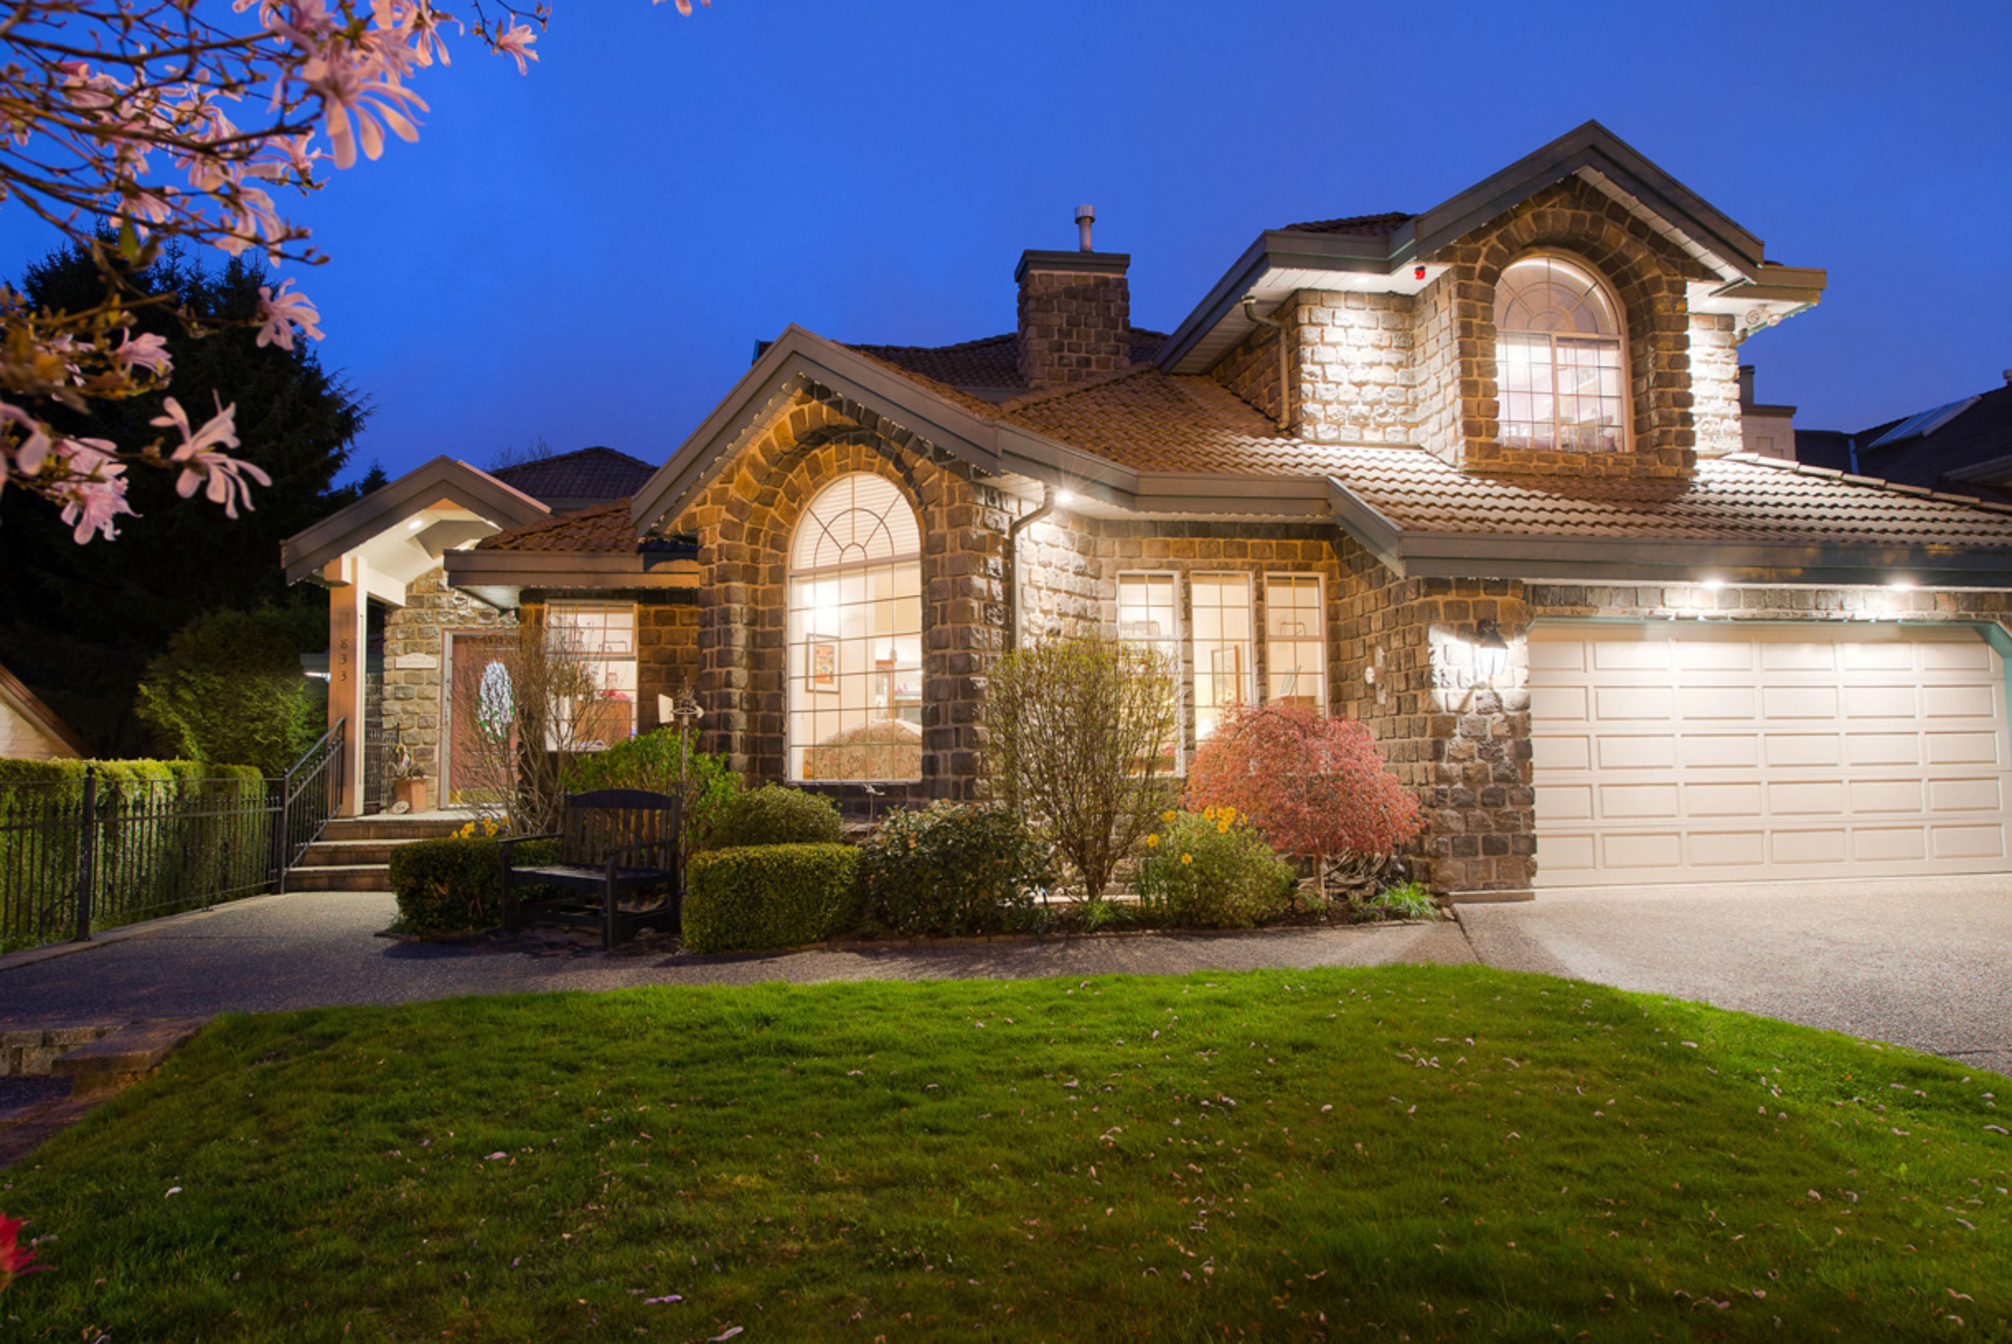 at 833 Sprice, Coquitlam West, Coquitlam